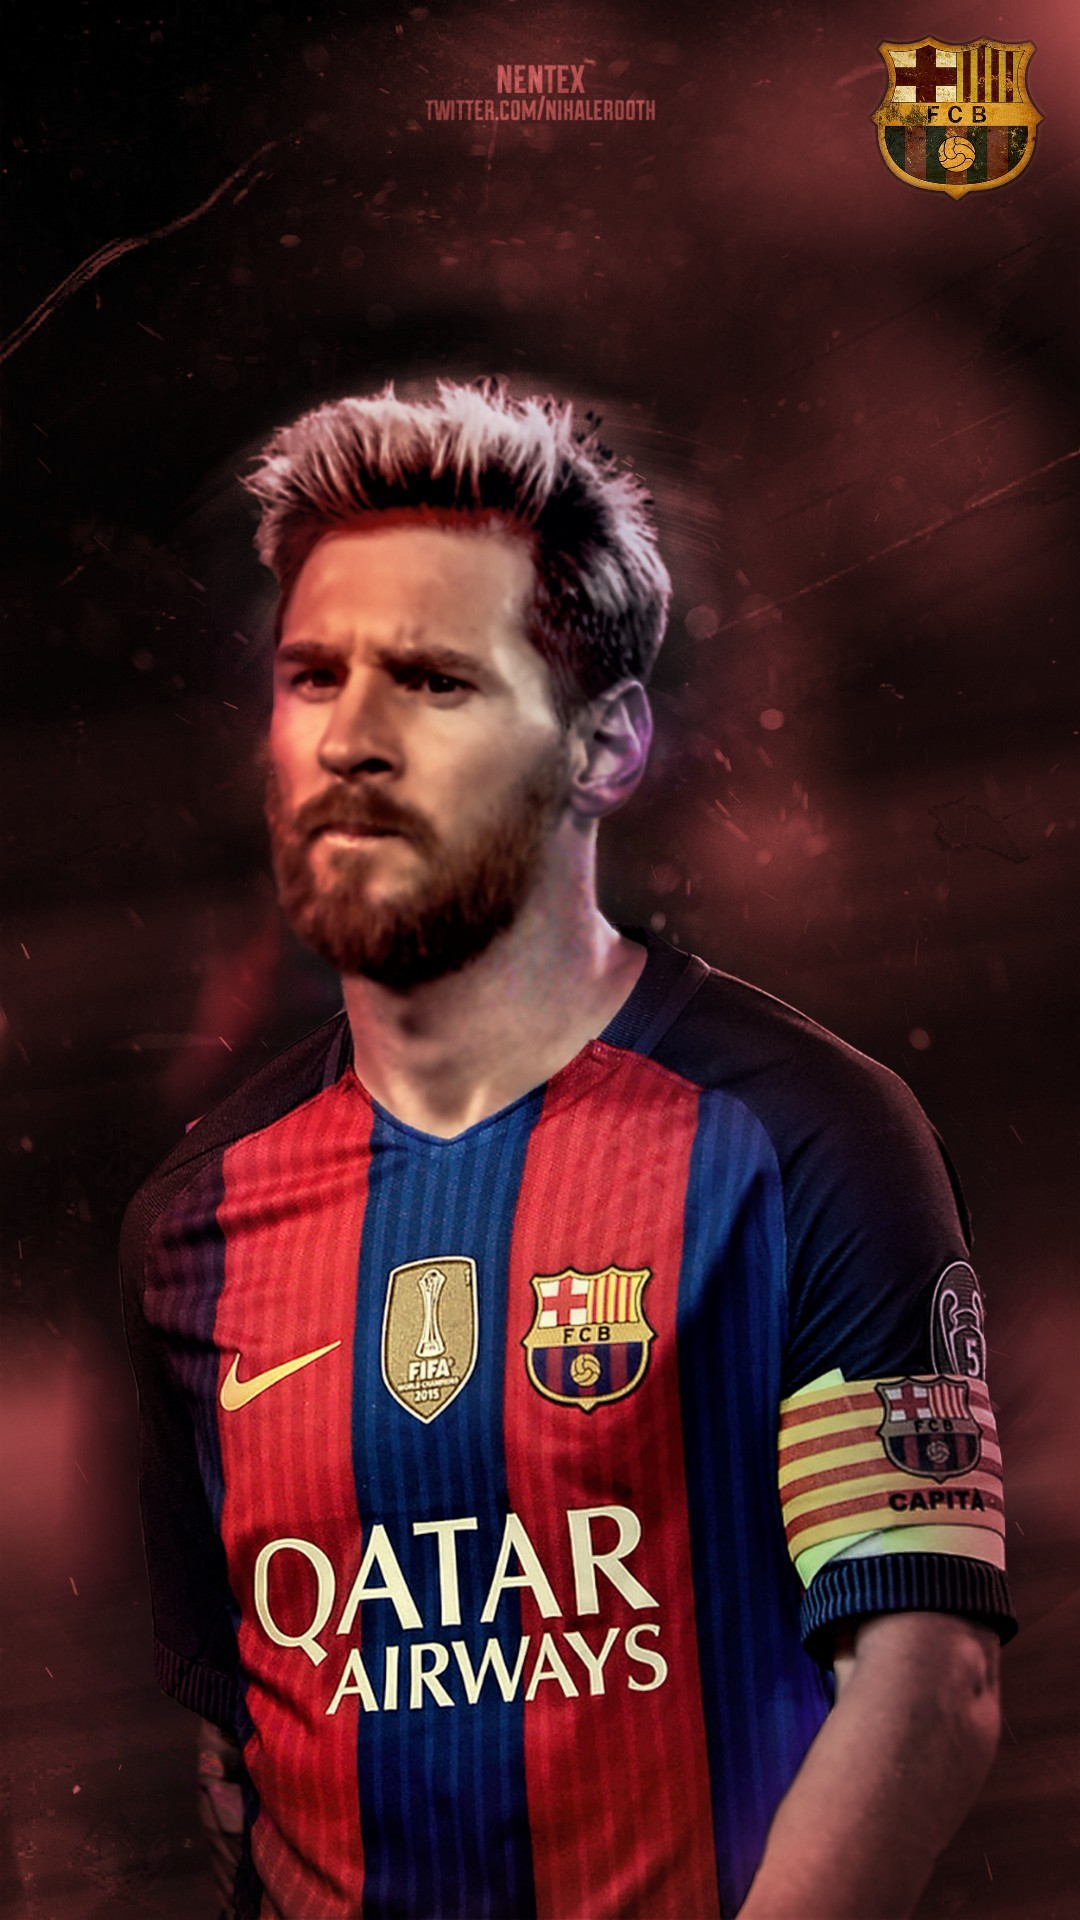 Cool 3d Wallpaper Black Wallpaper Lionel Messi Iphone 2019 Football Wallpaper